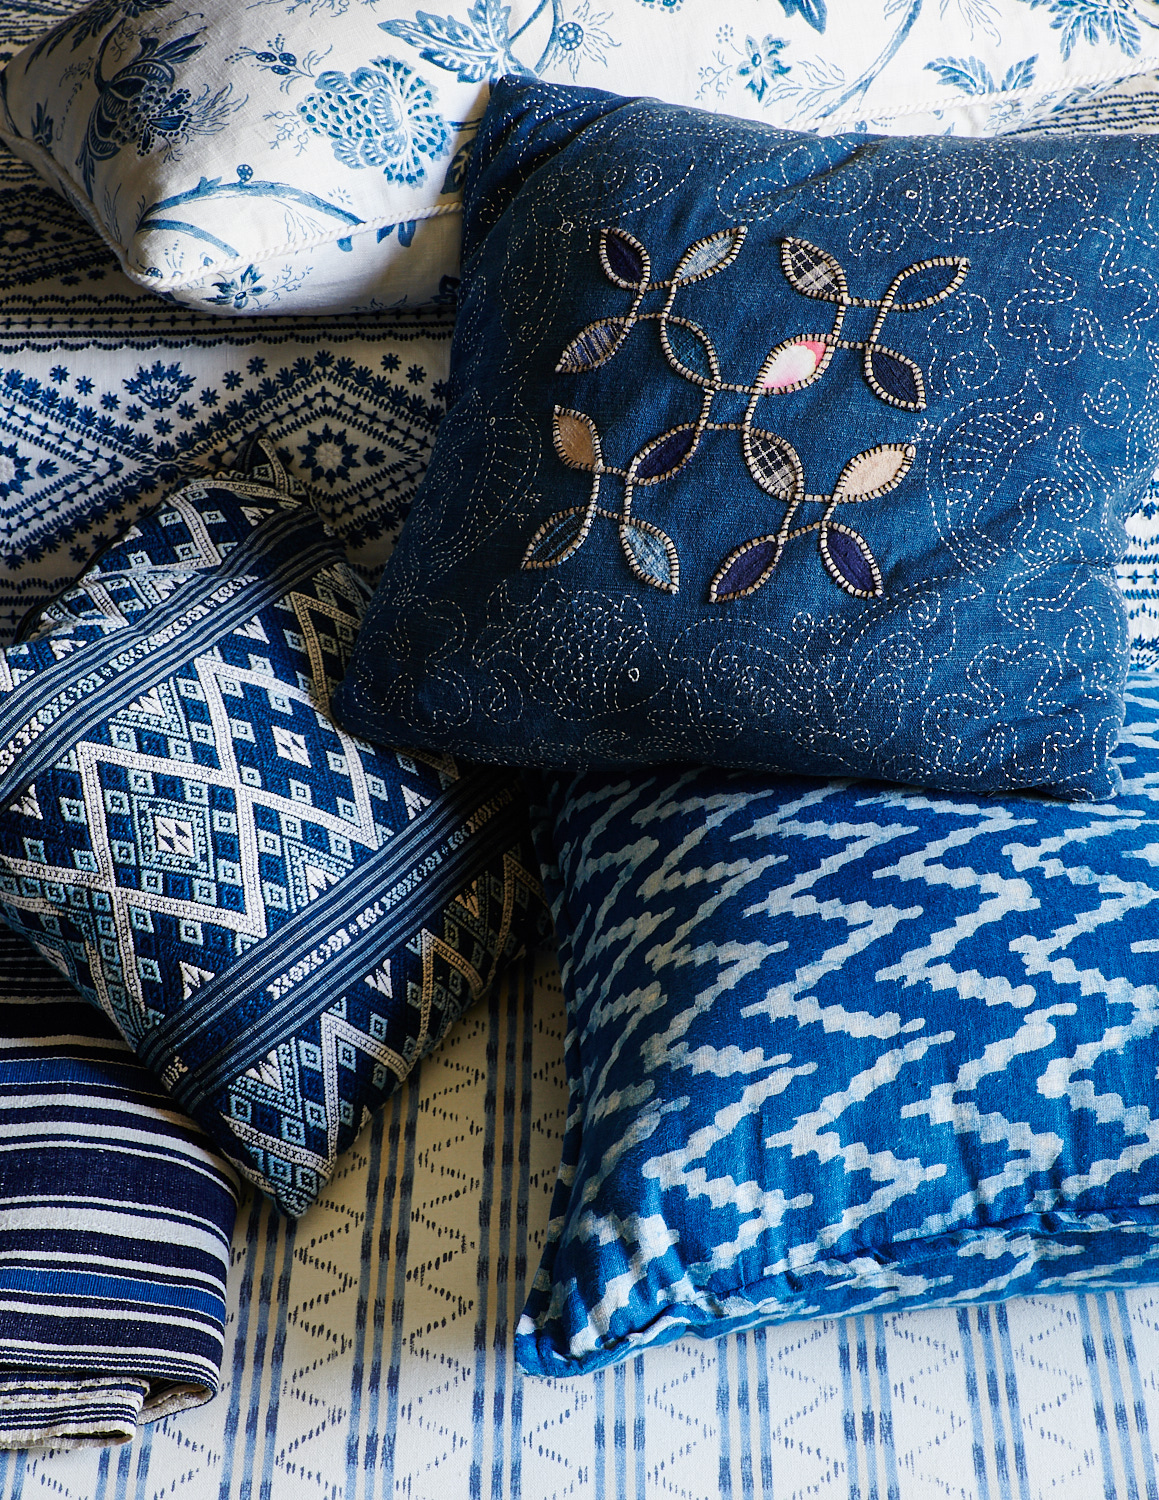 Various-patterned throw pillows